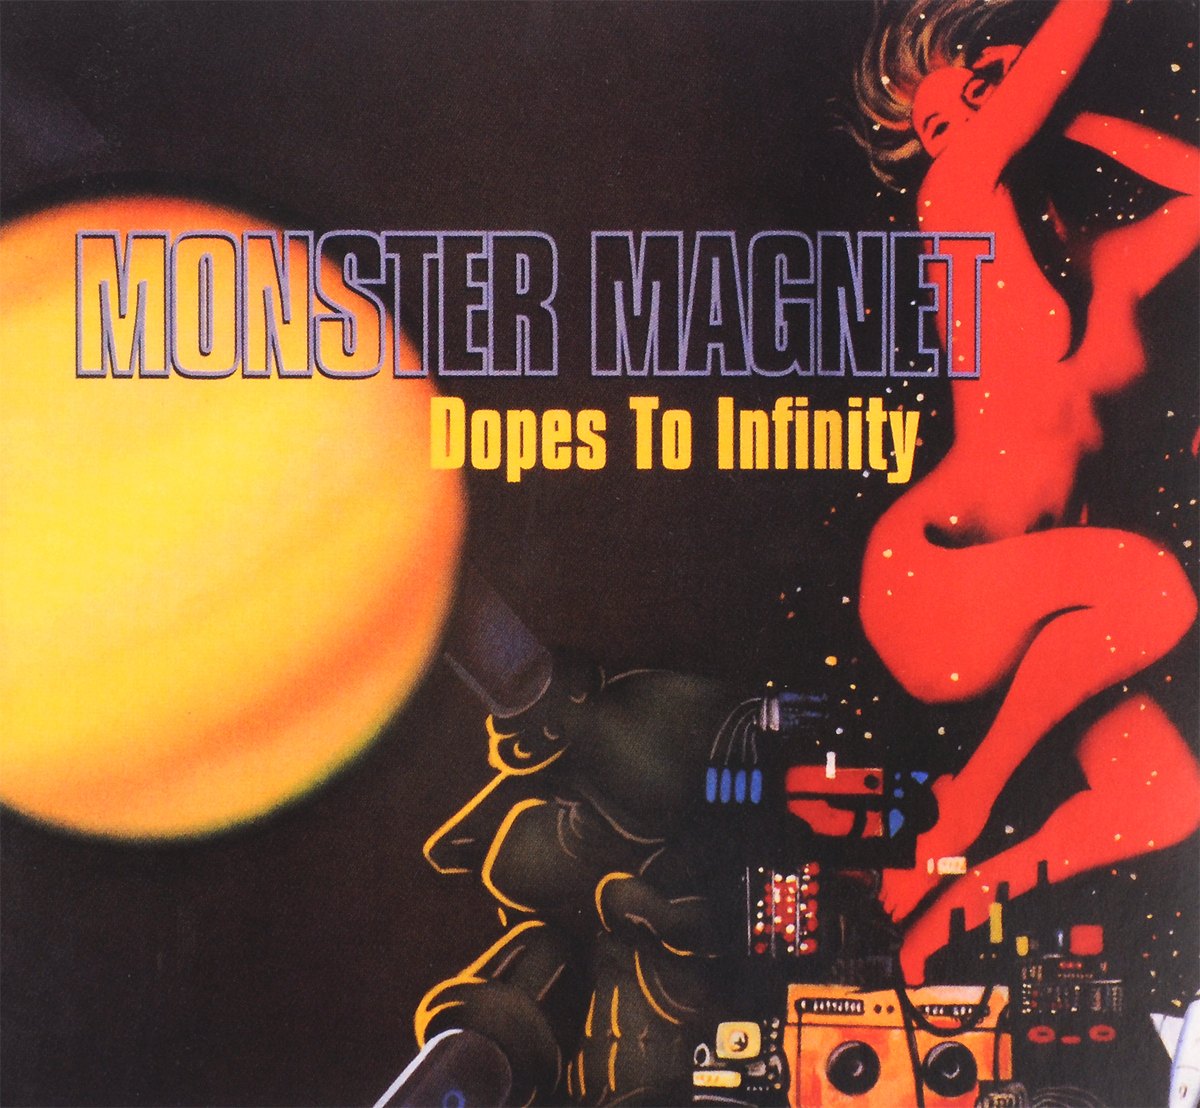 Monster Magnet. Dopes To Infinity. Deluxe Edition (2 CD)